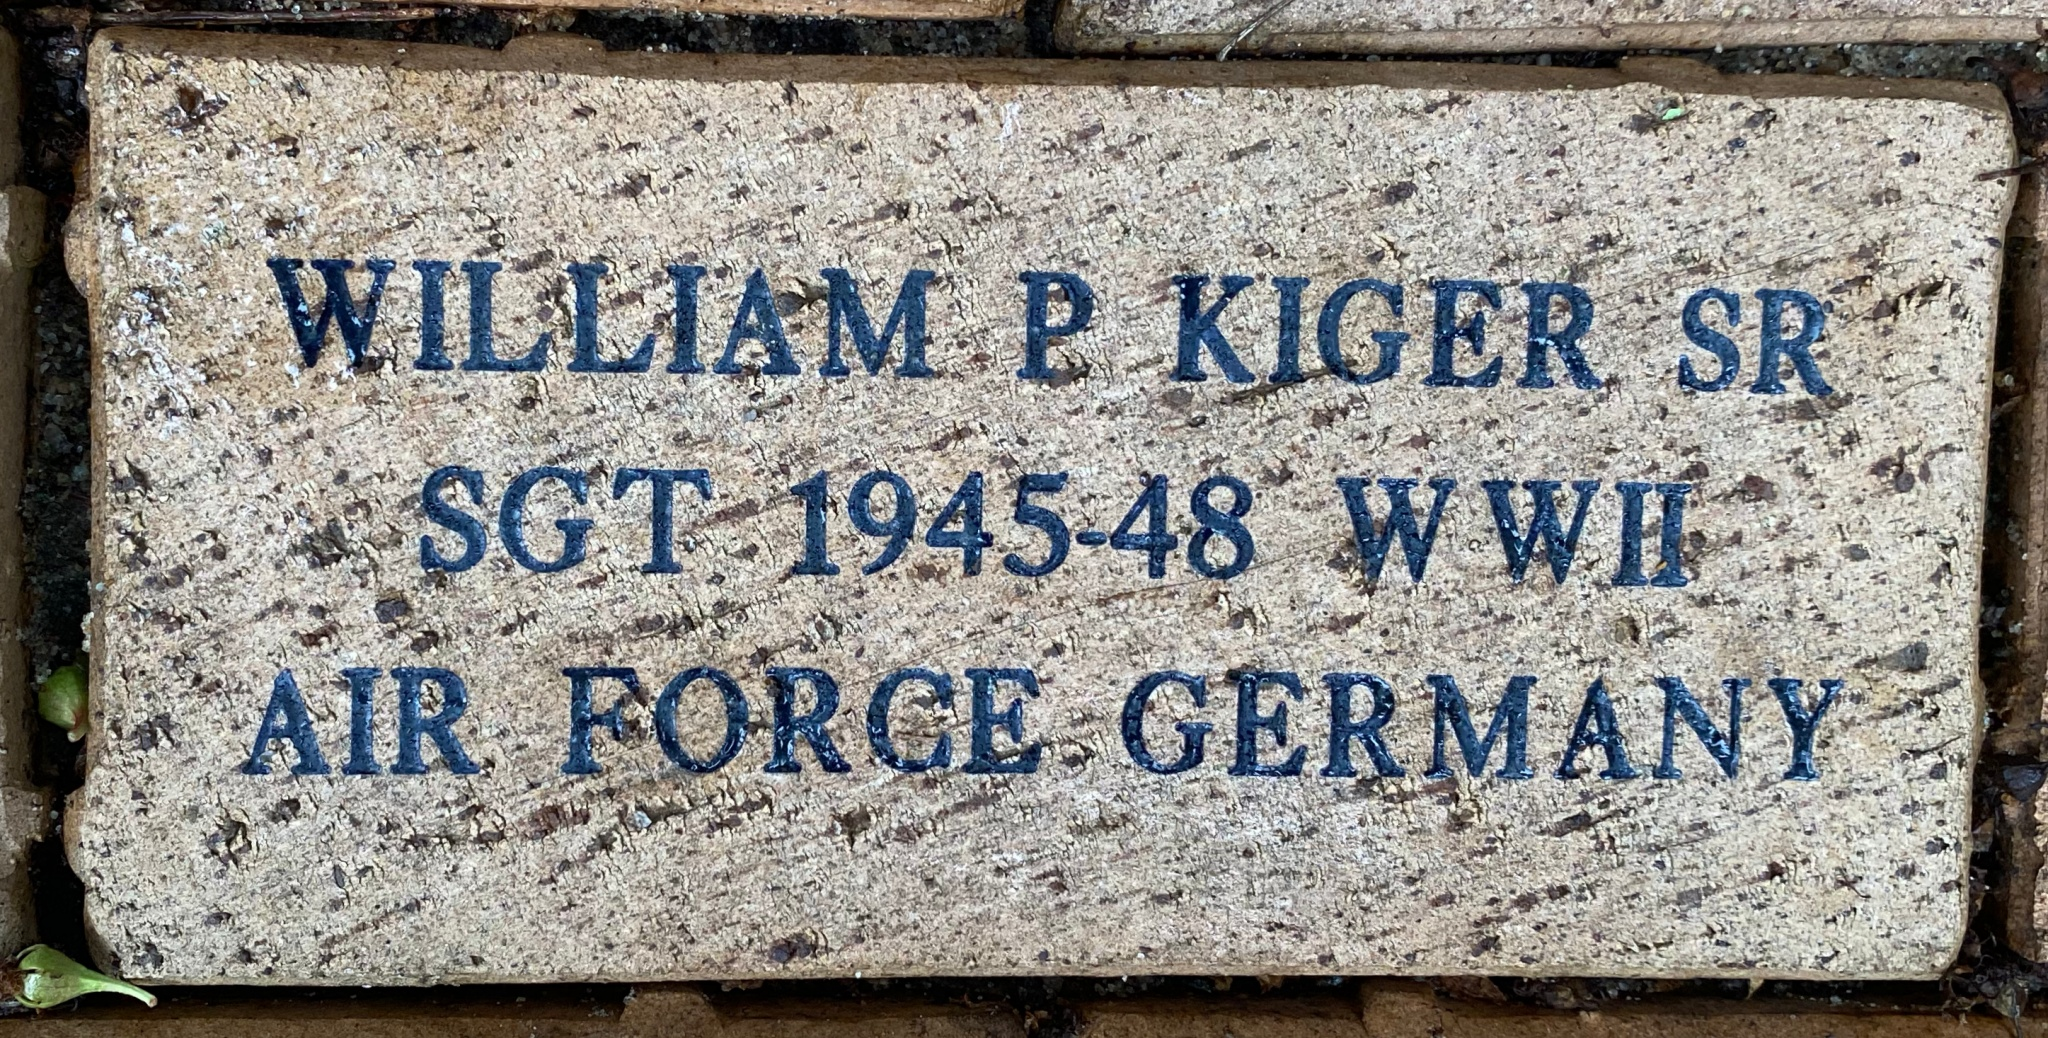 WILLIAM P. KIGER SR SGT 1945-1948 WWII AIR FORCE GERMANY